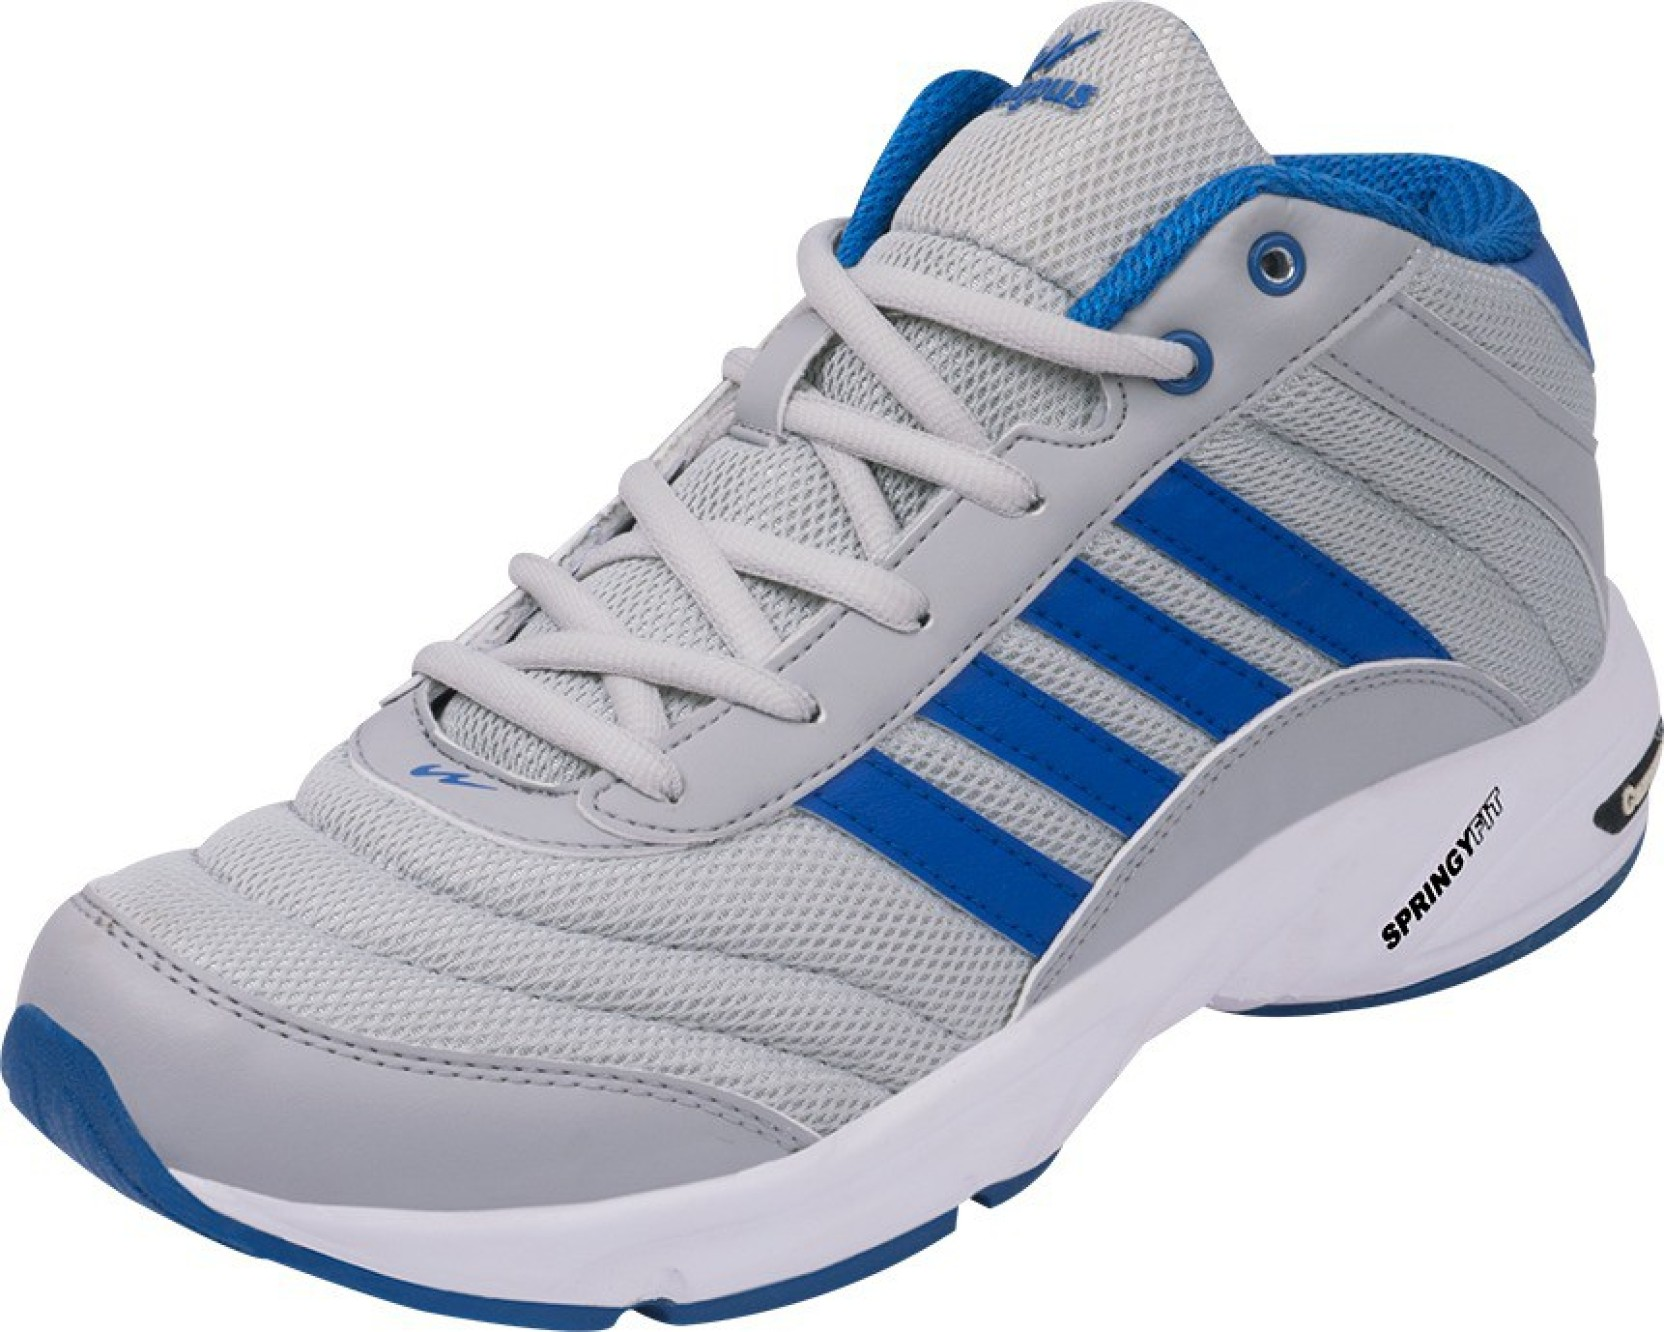 Best Shoes For Campus Walking